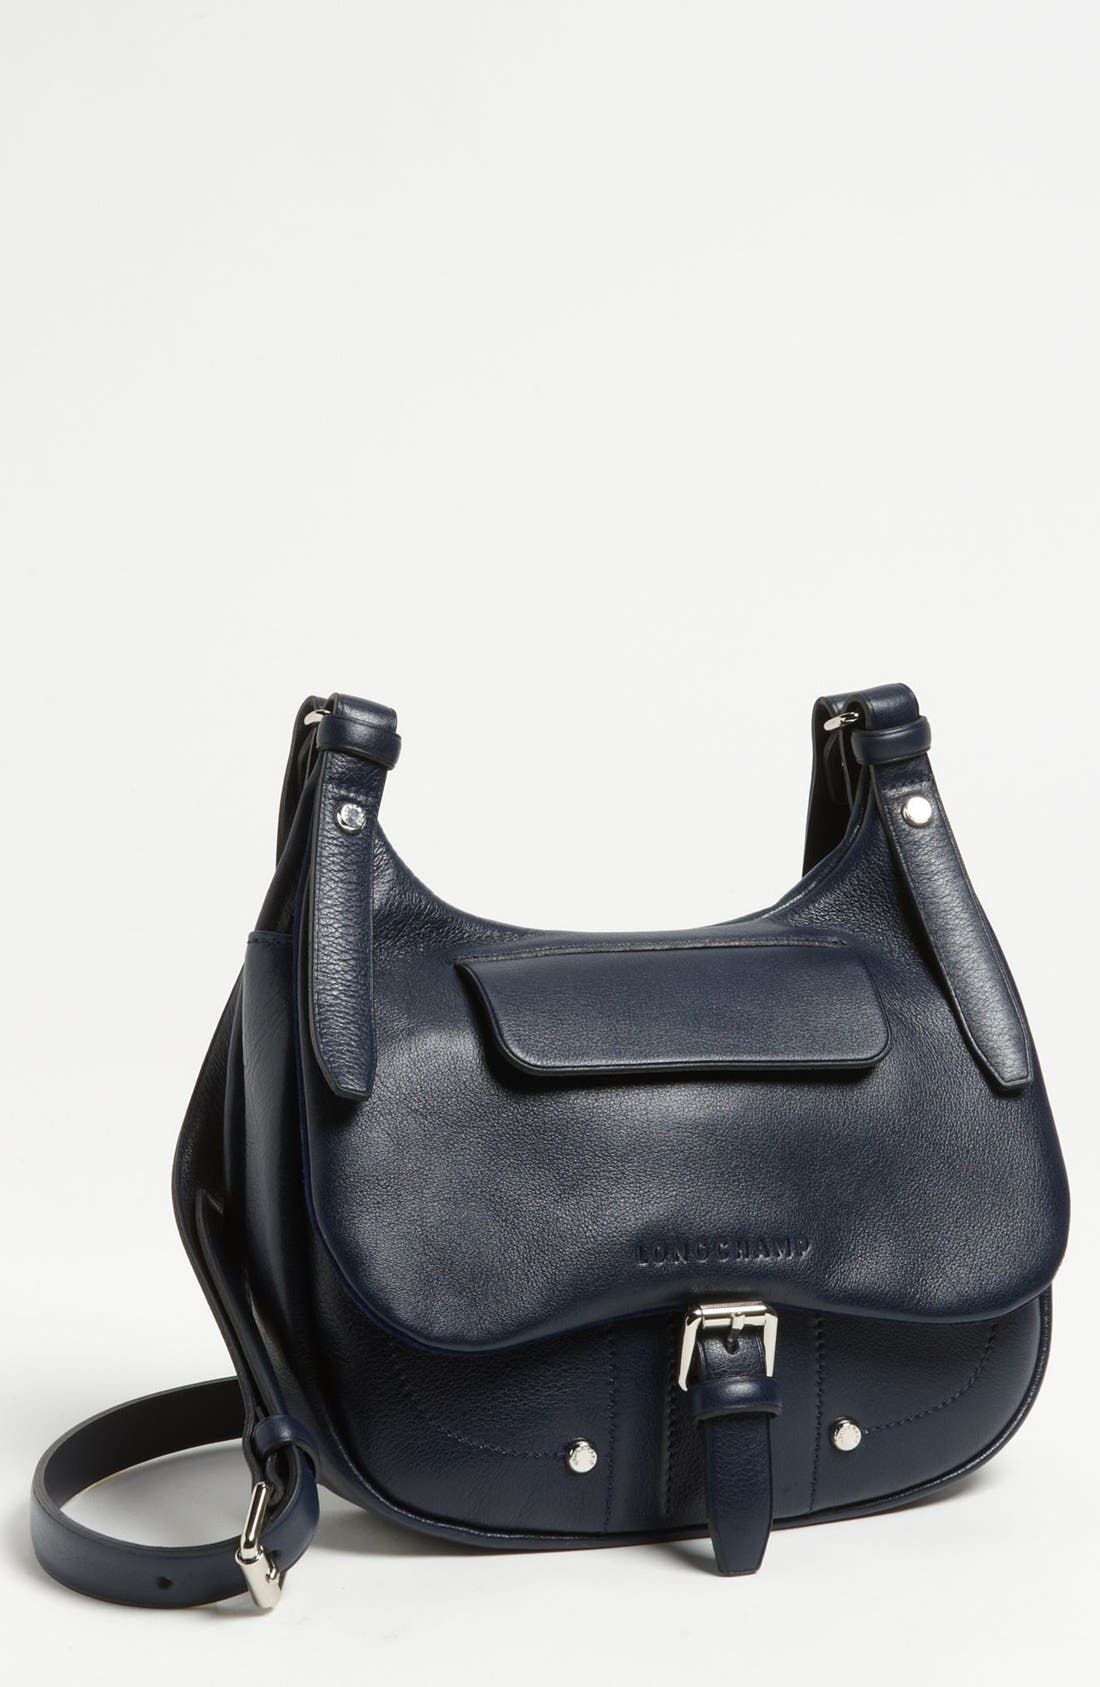 Alternate Image 1 Selected - Longchamp 'Balzane - Small' Crossbody Bag